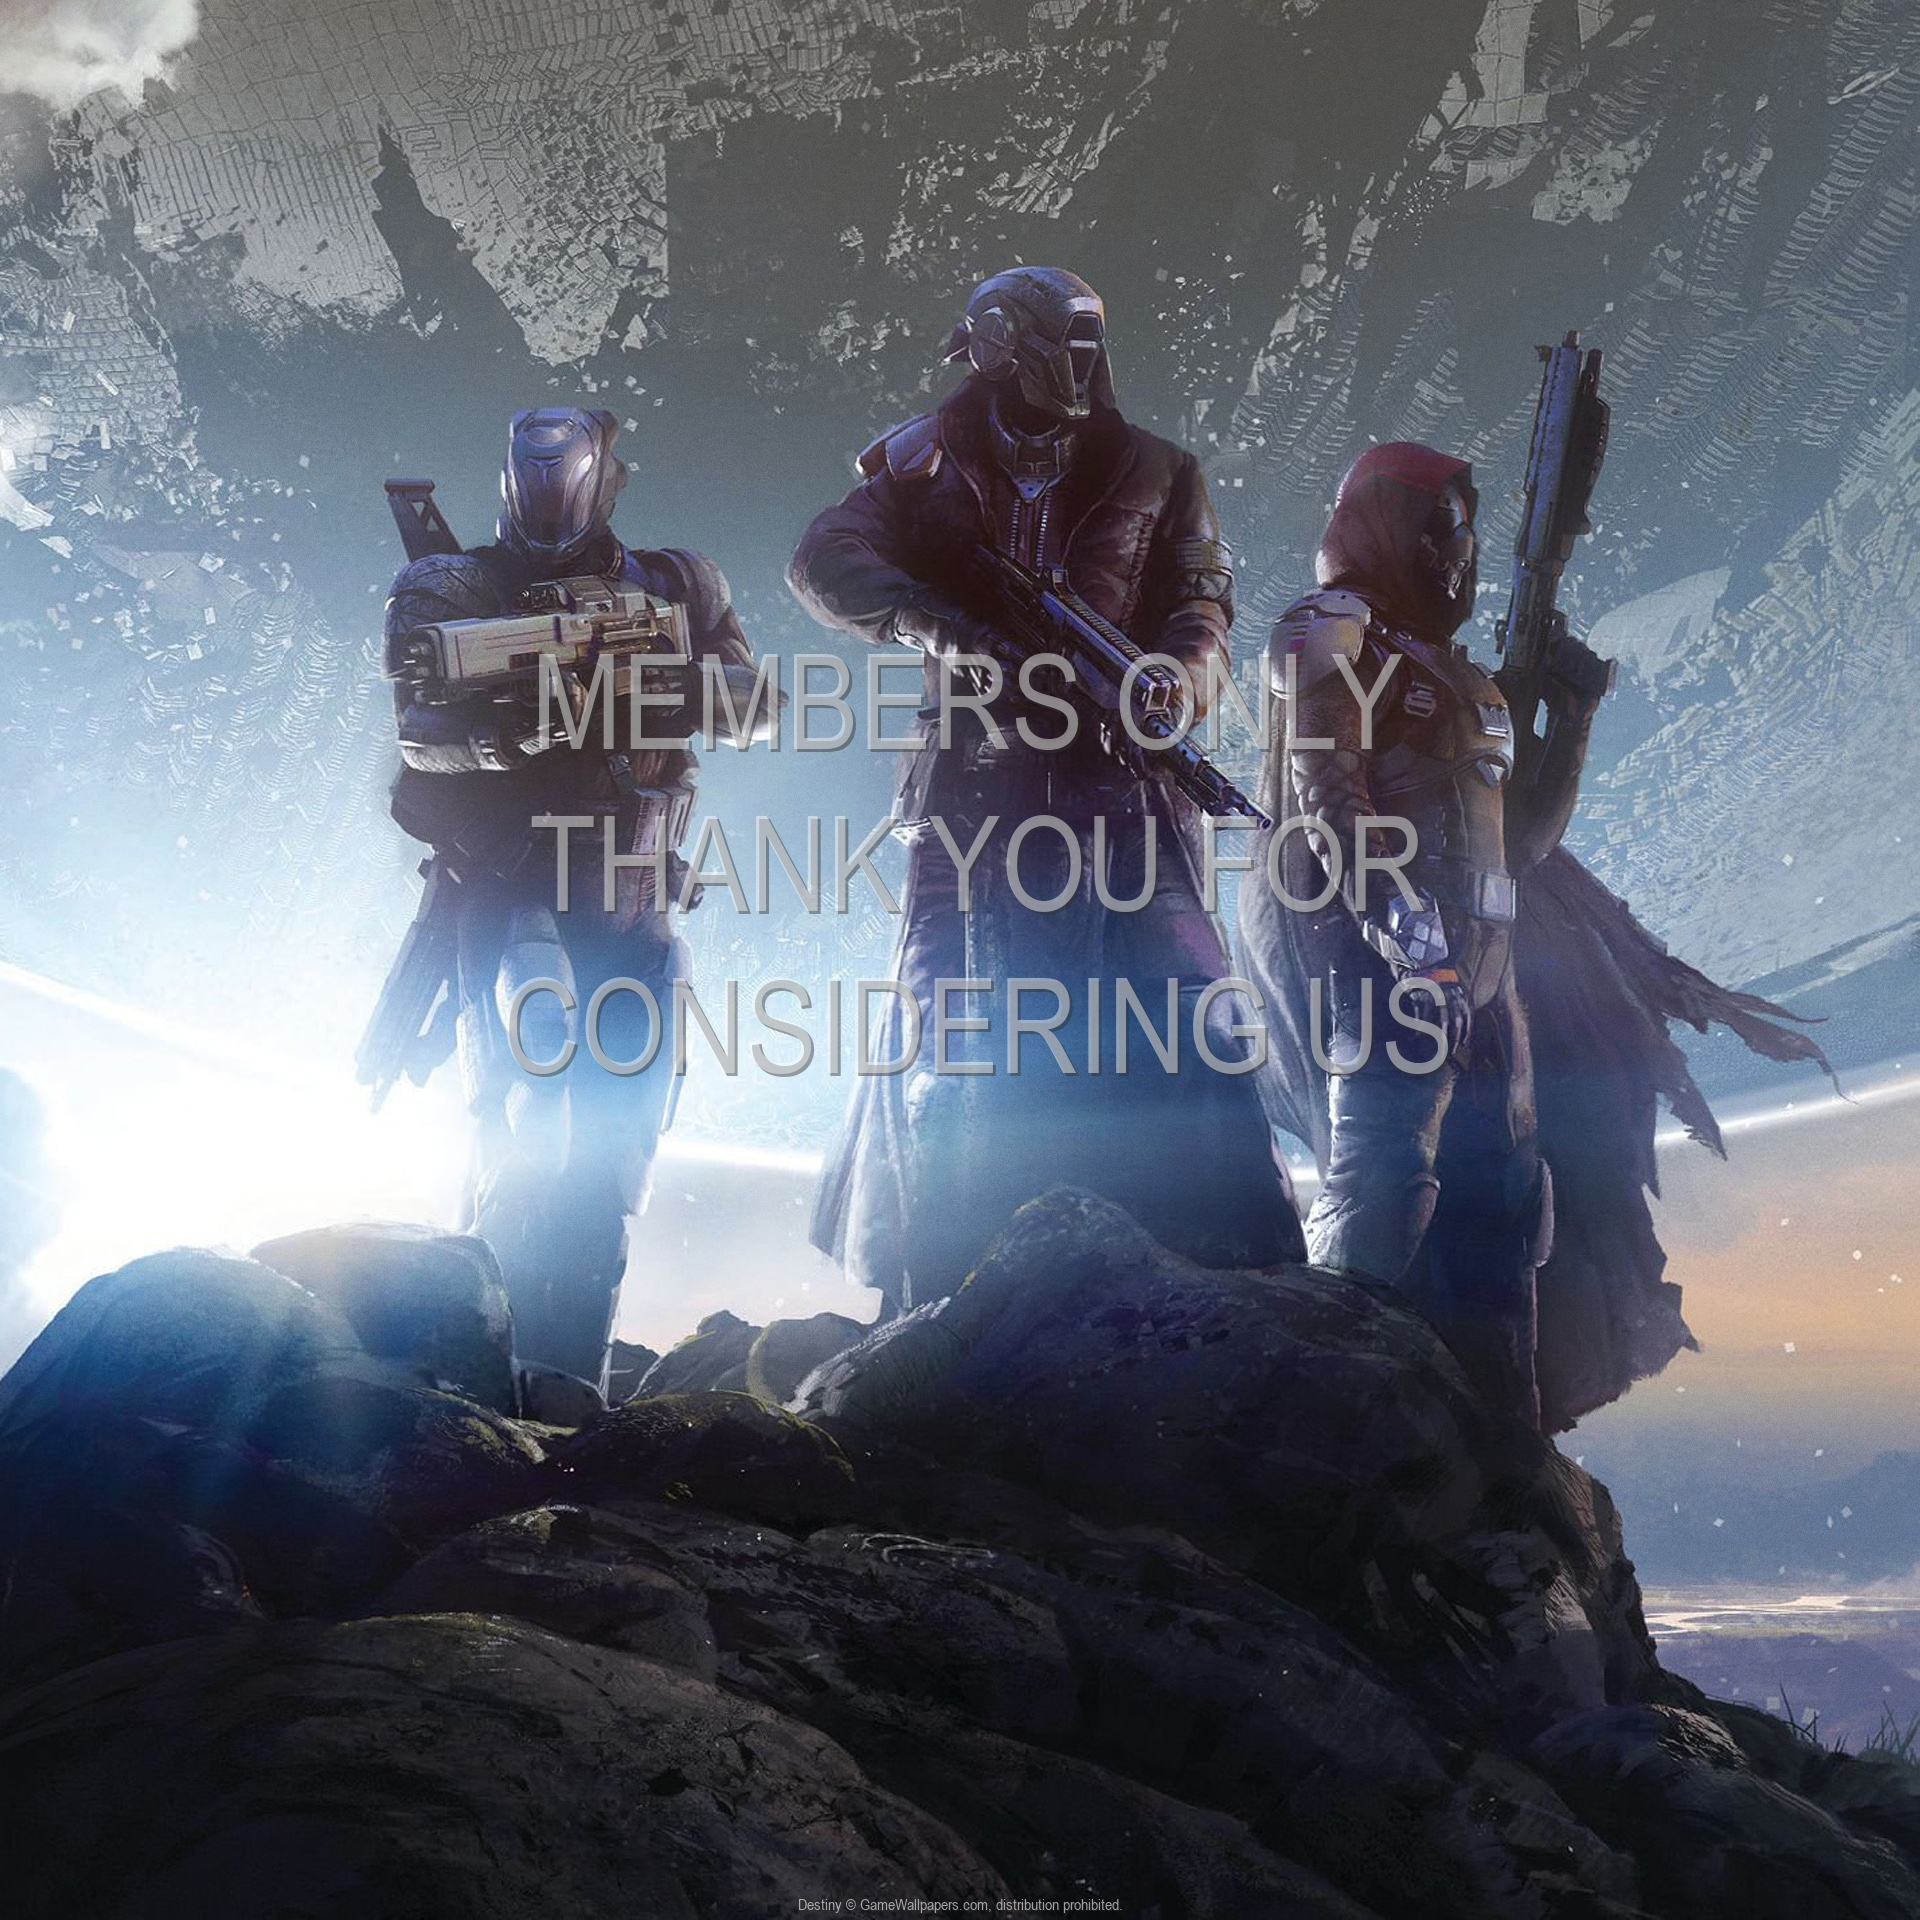 Destiny 1920x1080 Mobile wallpaper or background 17